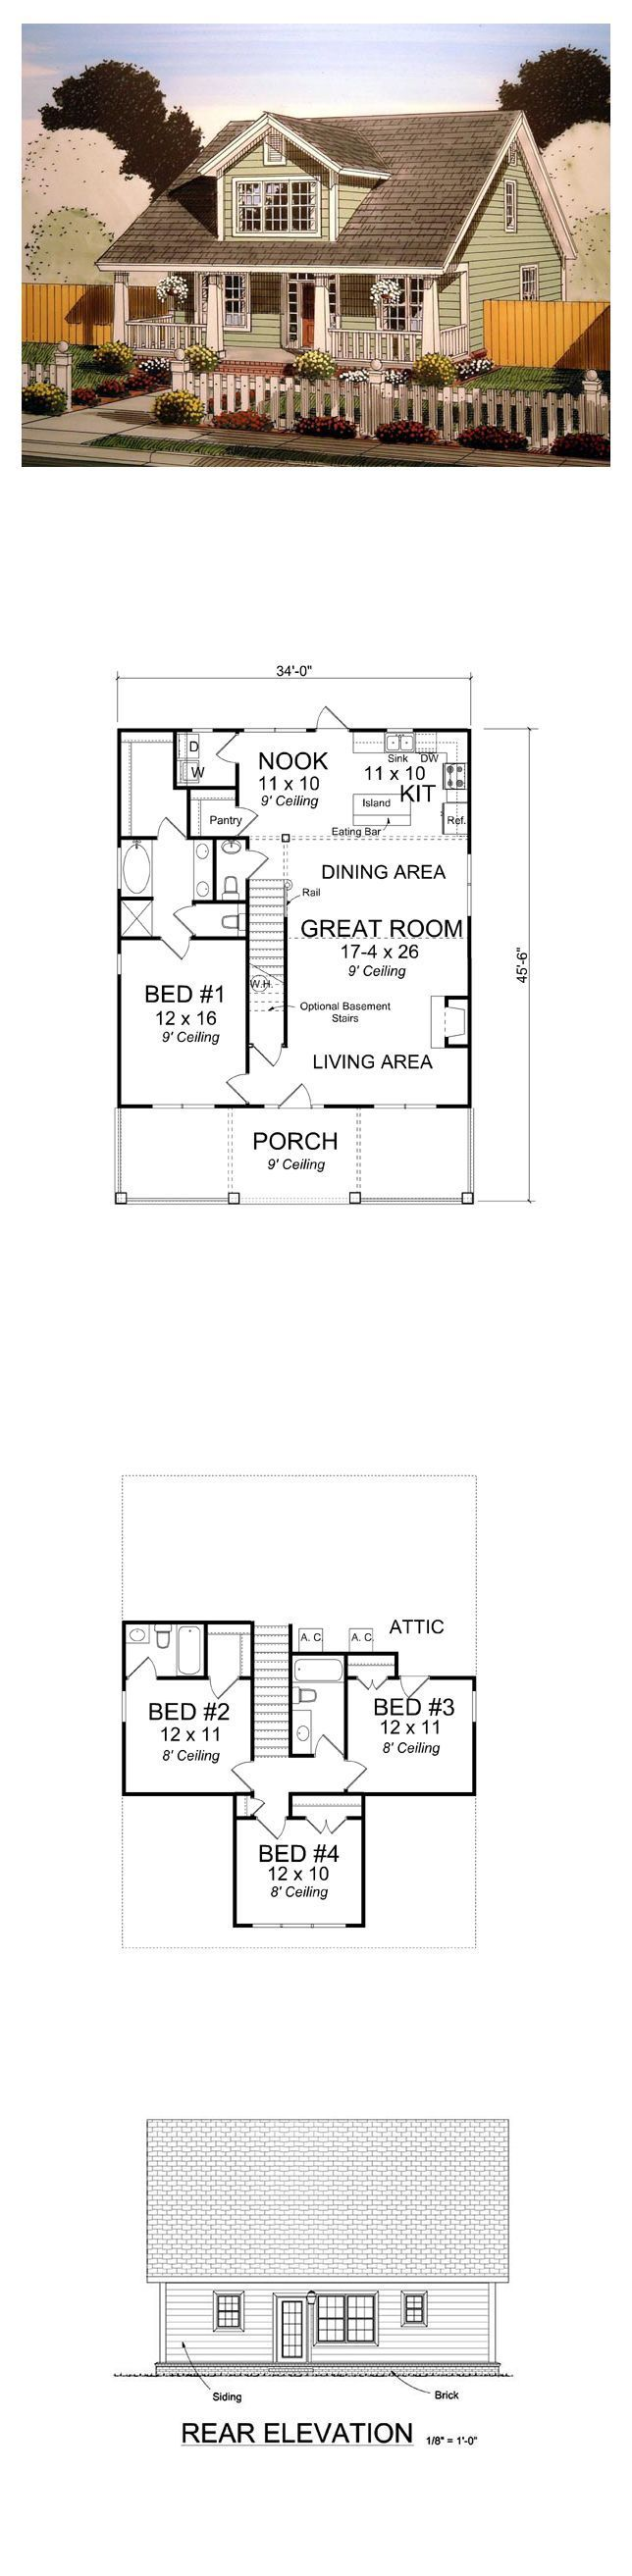 Best 25 architectural house plans ideas on pinterest for Cape cod house plans with basement